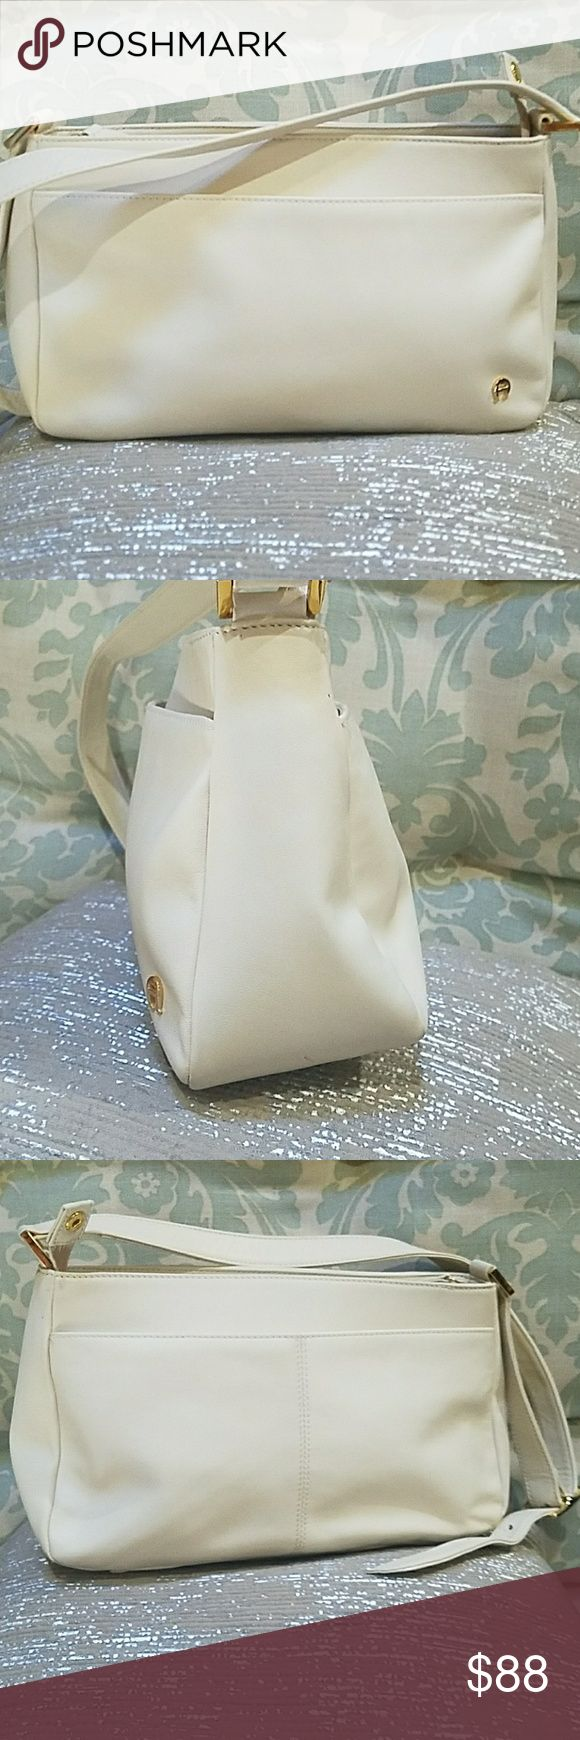 """Etienne Aigner signature cream shoulder bag Etienne Aigner signature cream shoulder bag with three sections of interior and smaller pockets within those, two large outside pockets one on each side. In exceptional condition except for a couple of tiny spots on the strap ad seen in pic #6 and one on the bottom that is barely visible. Interior pockets are immaculate and leather shows no real wear (other than previously mentioned.) Measures 12x3.5x7"""" Etienne Aigner Bags Shoulder Bags"""